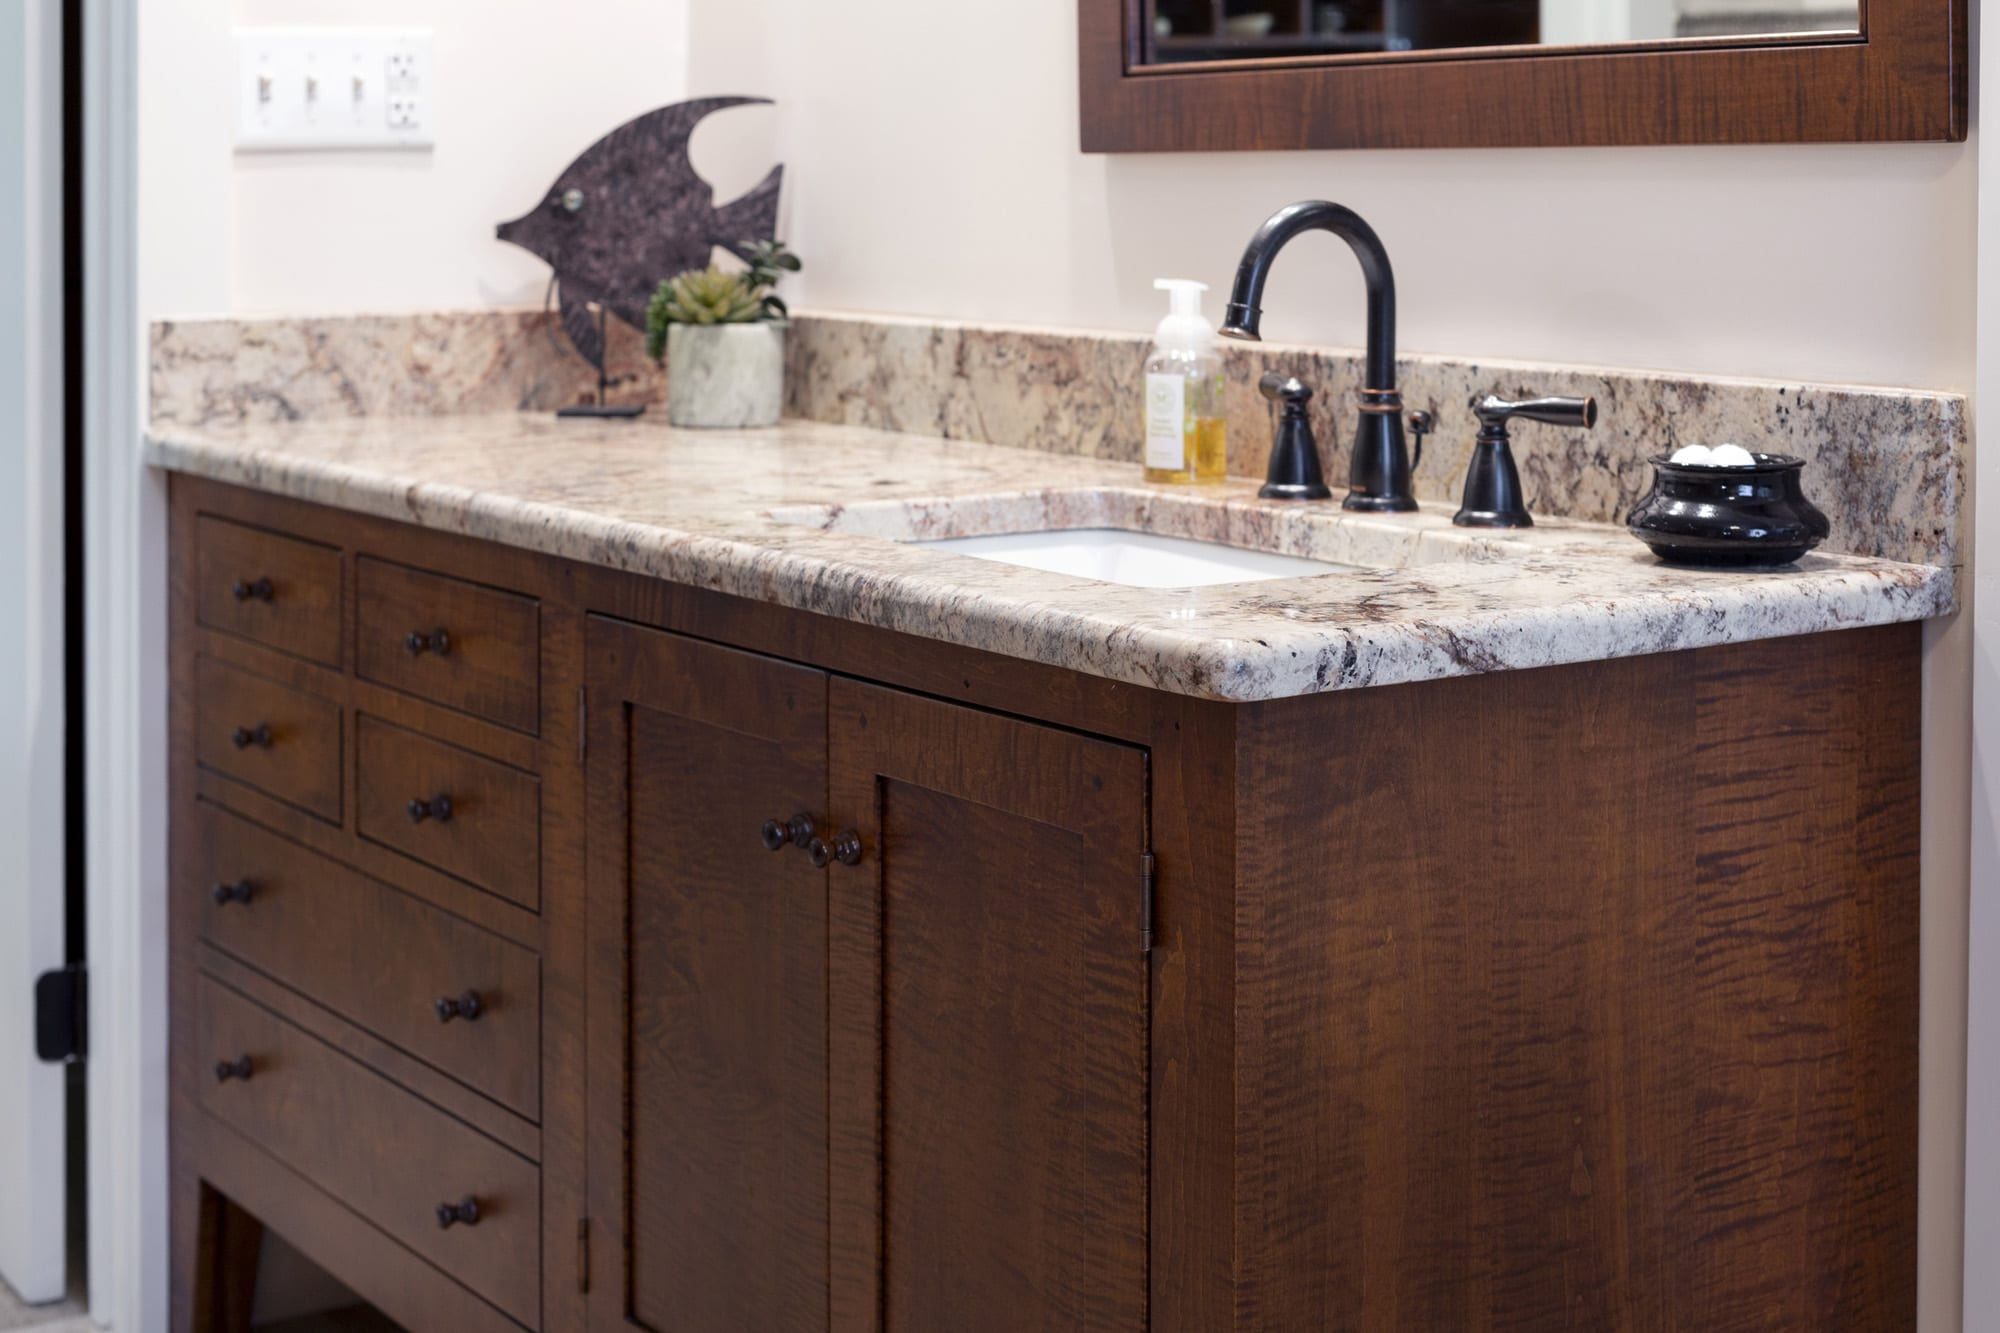 Shaker Style Bathroom Vanities of high-quality in Tiger ...